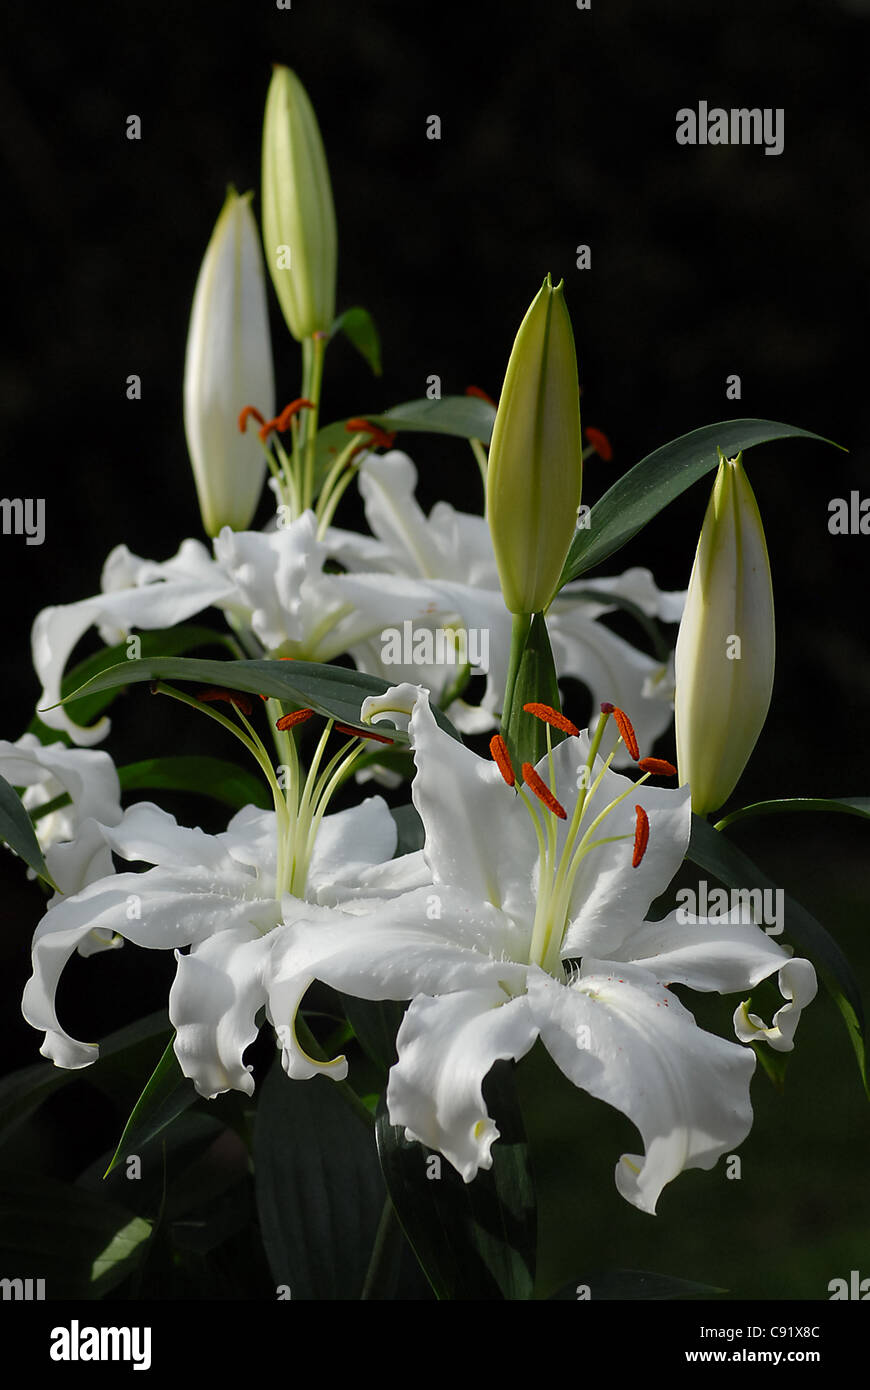 The Beautiful Blooms Of The White Lily Lilium Casa Blanca Stock